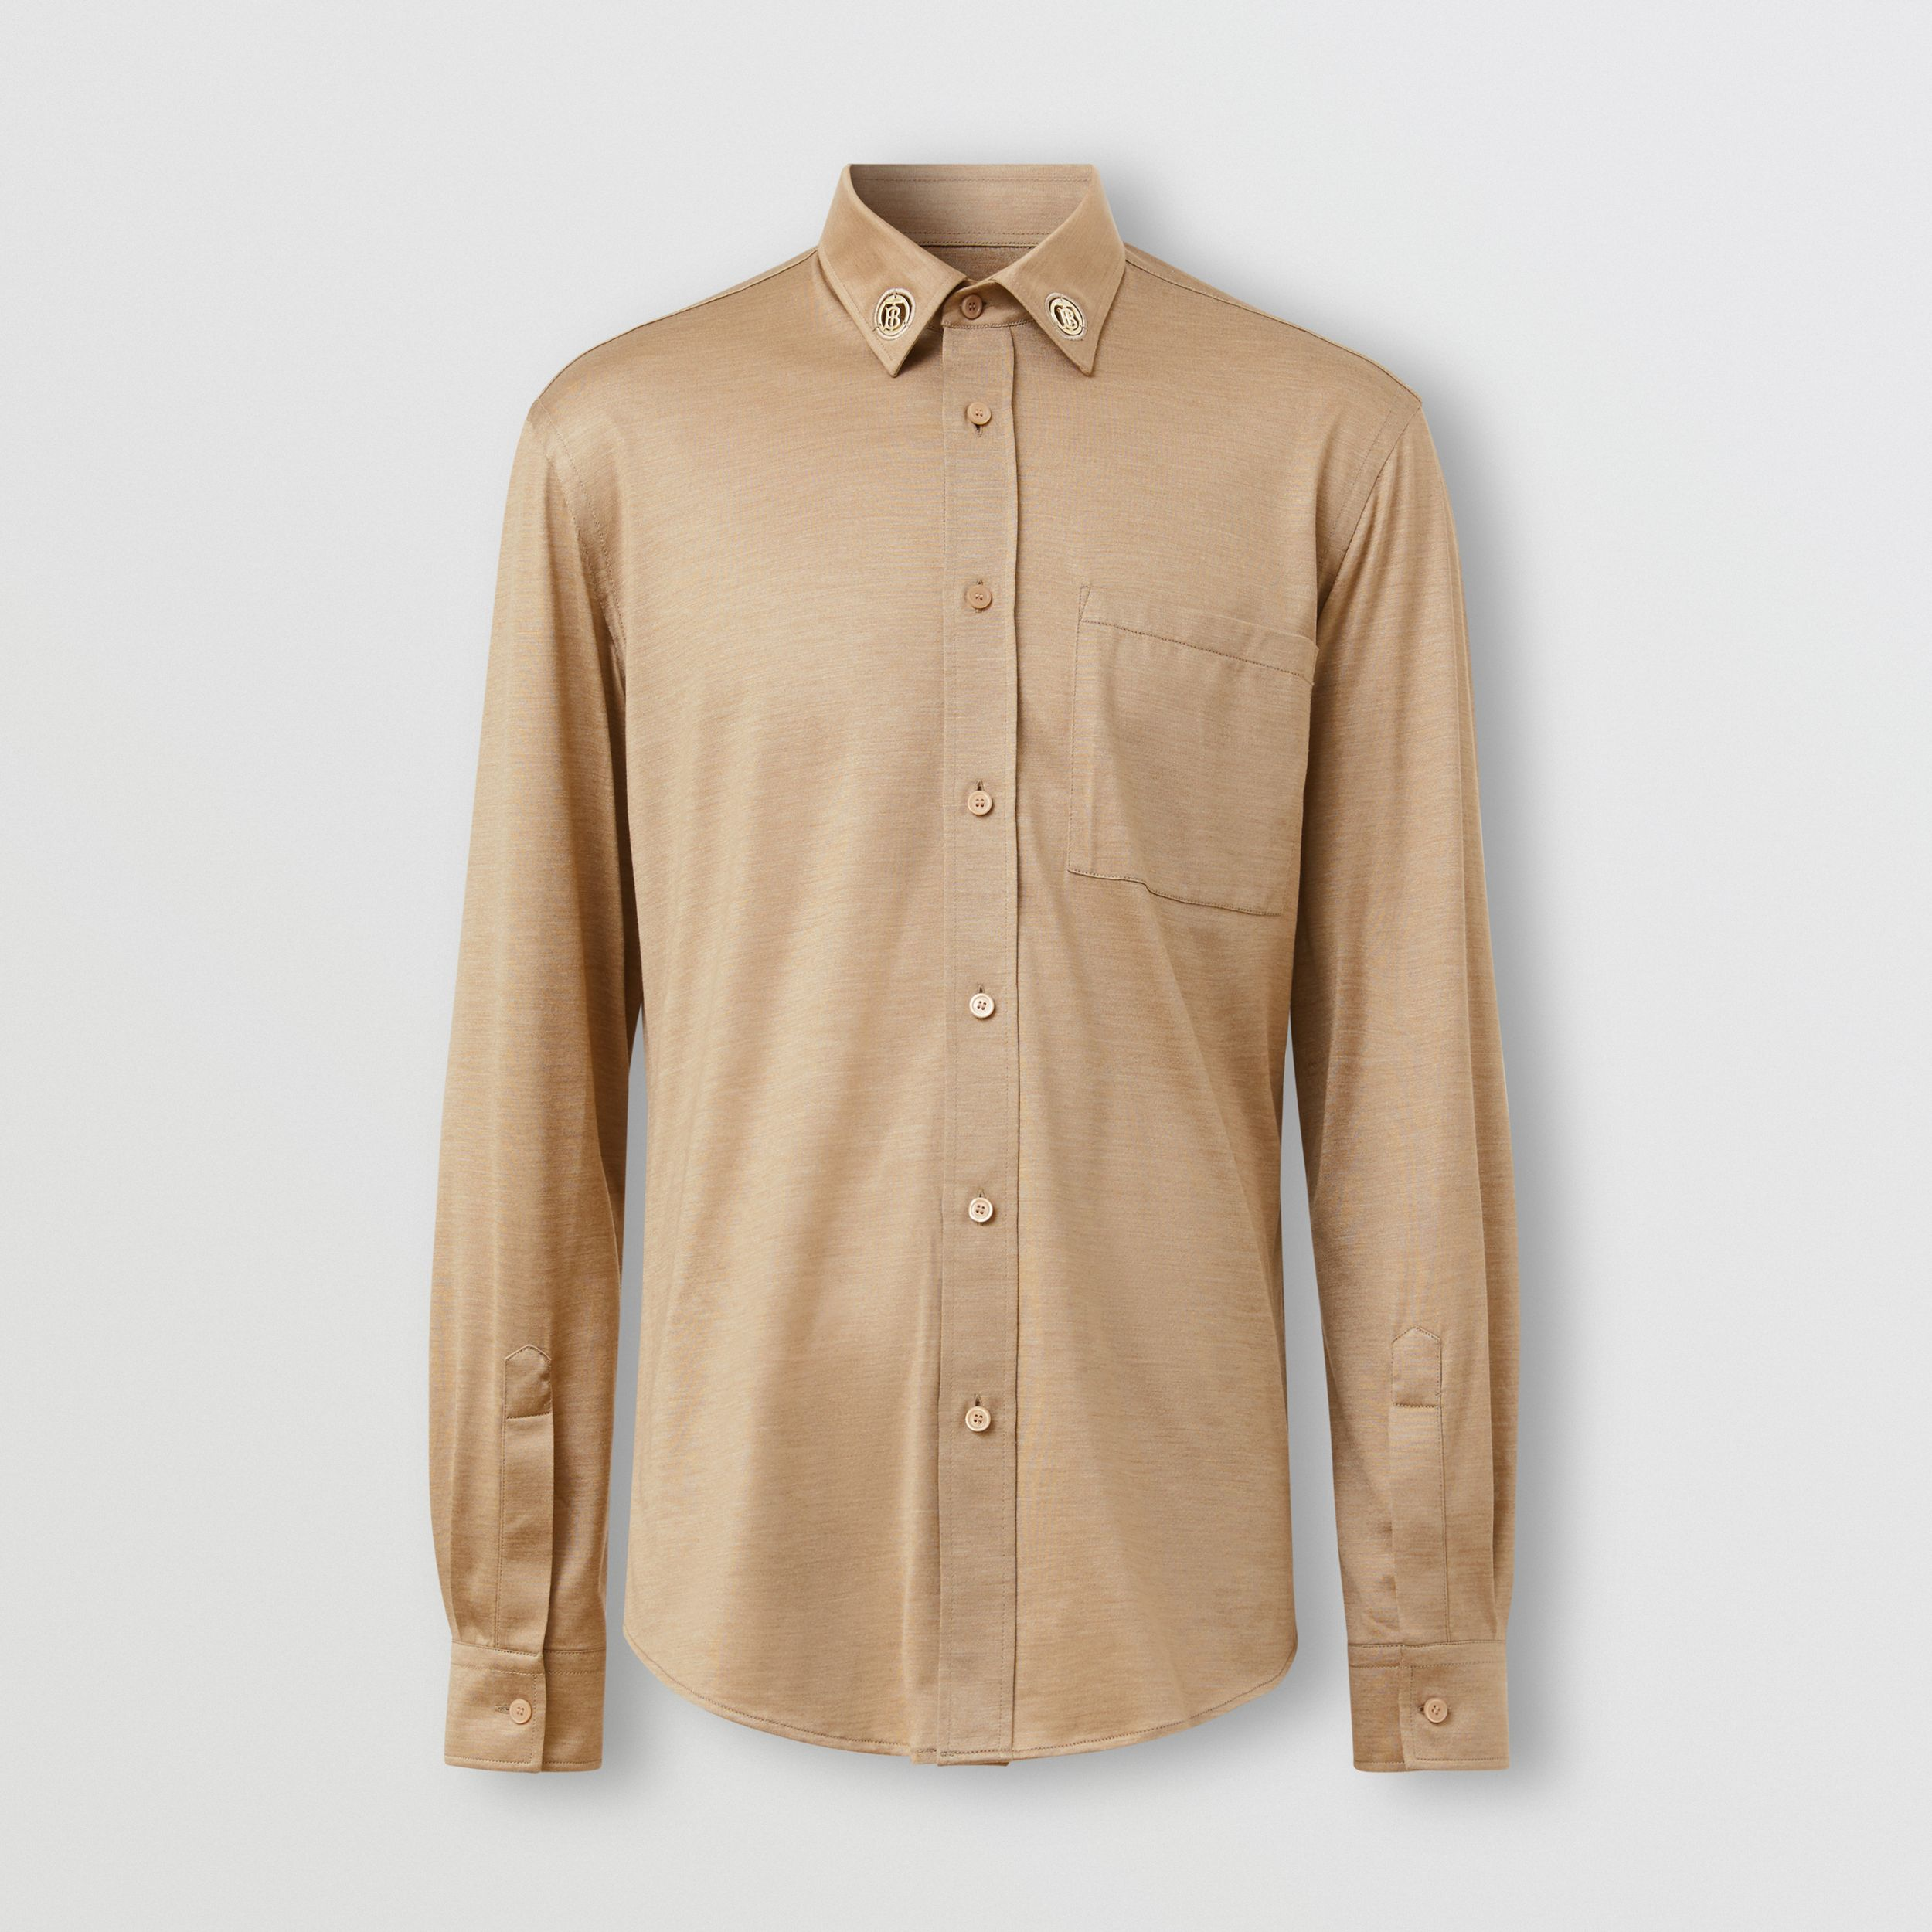 Classic Fit Monogram Motif Silk Jersey Shirt in Soft Fawn - Men | Burberry - 4